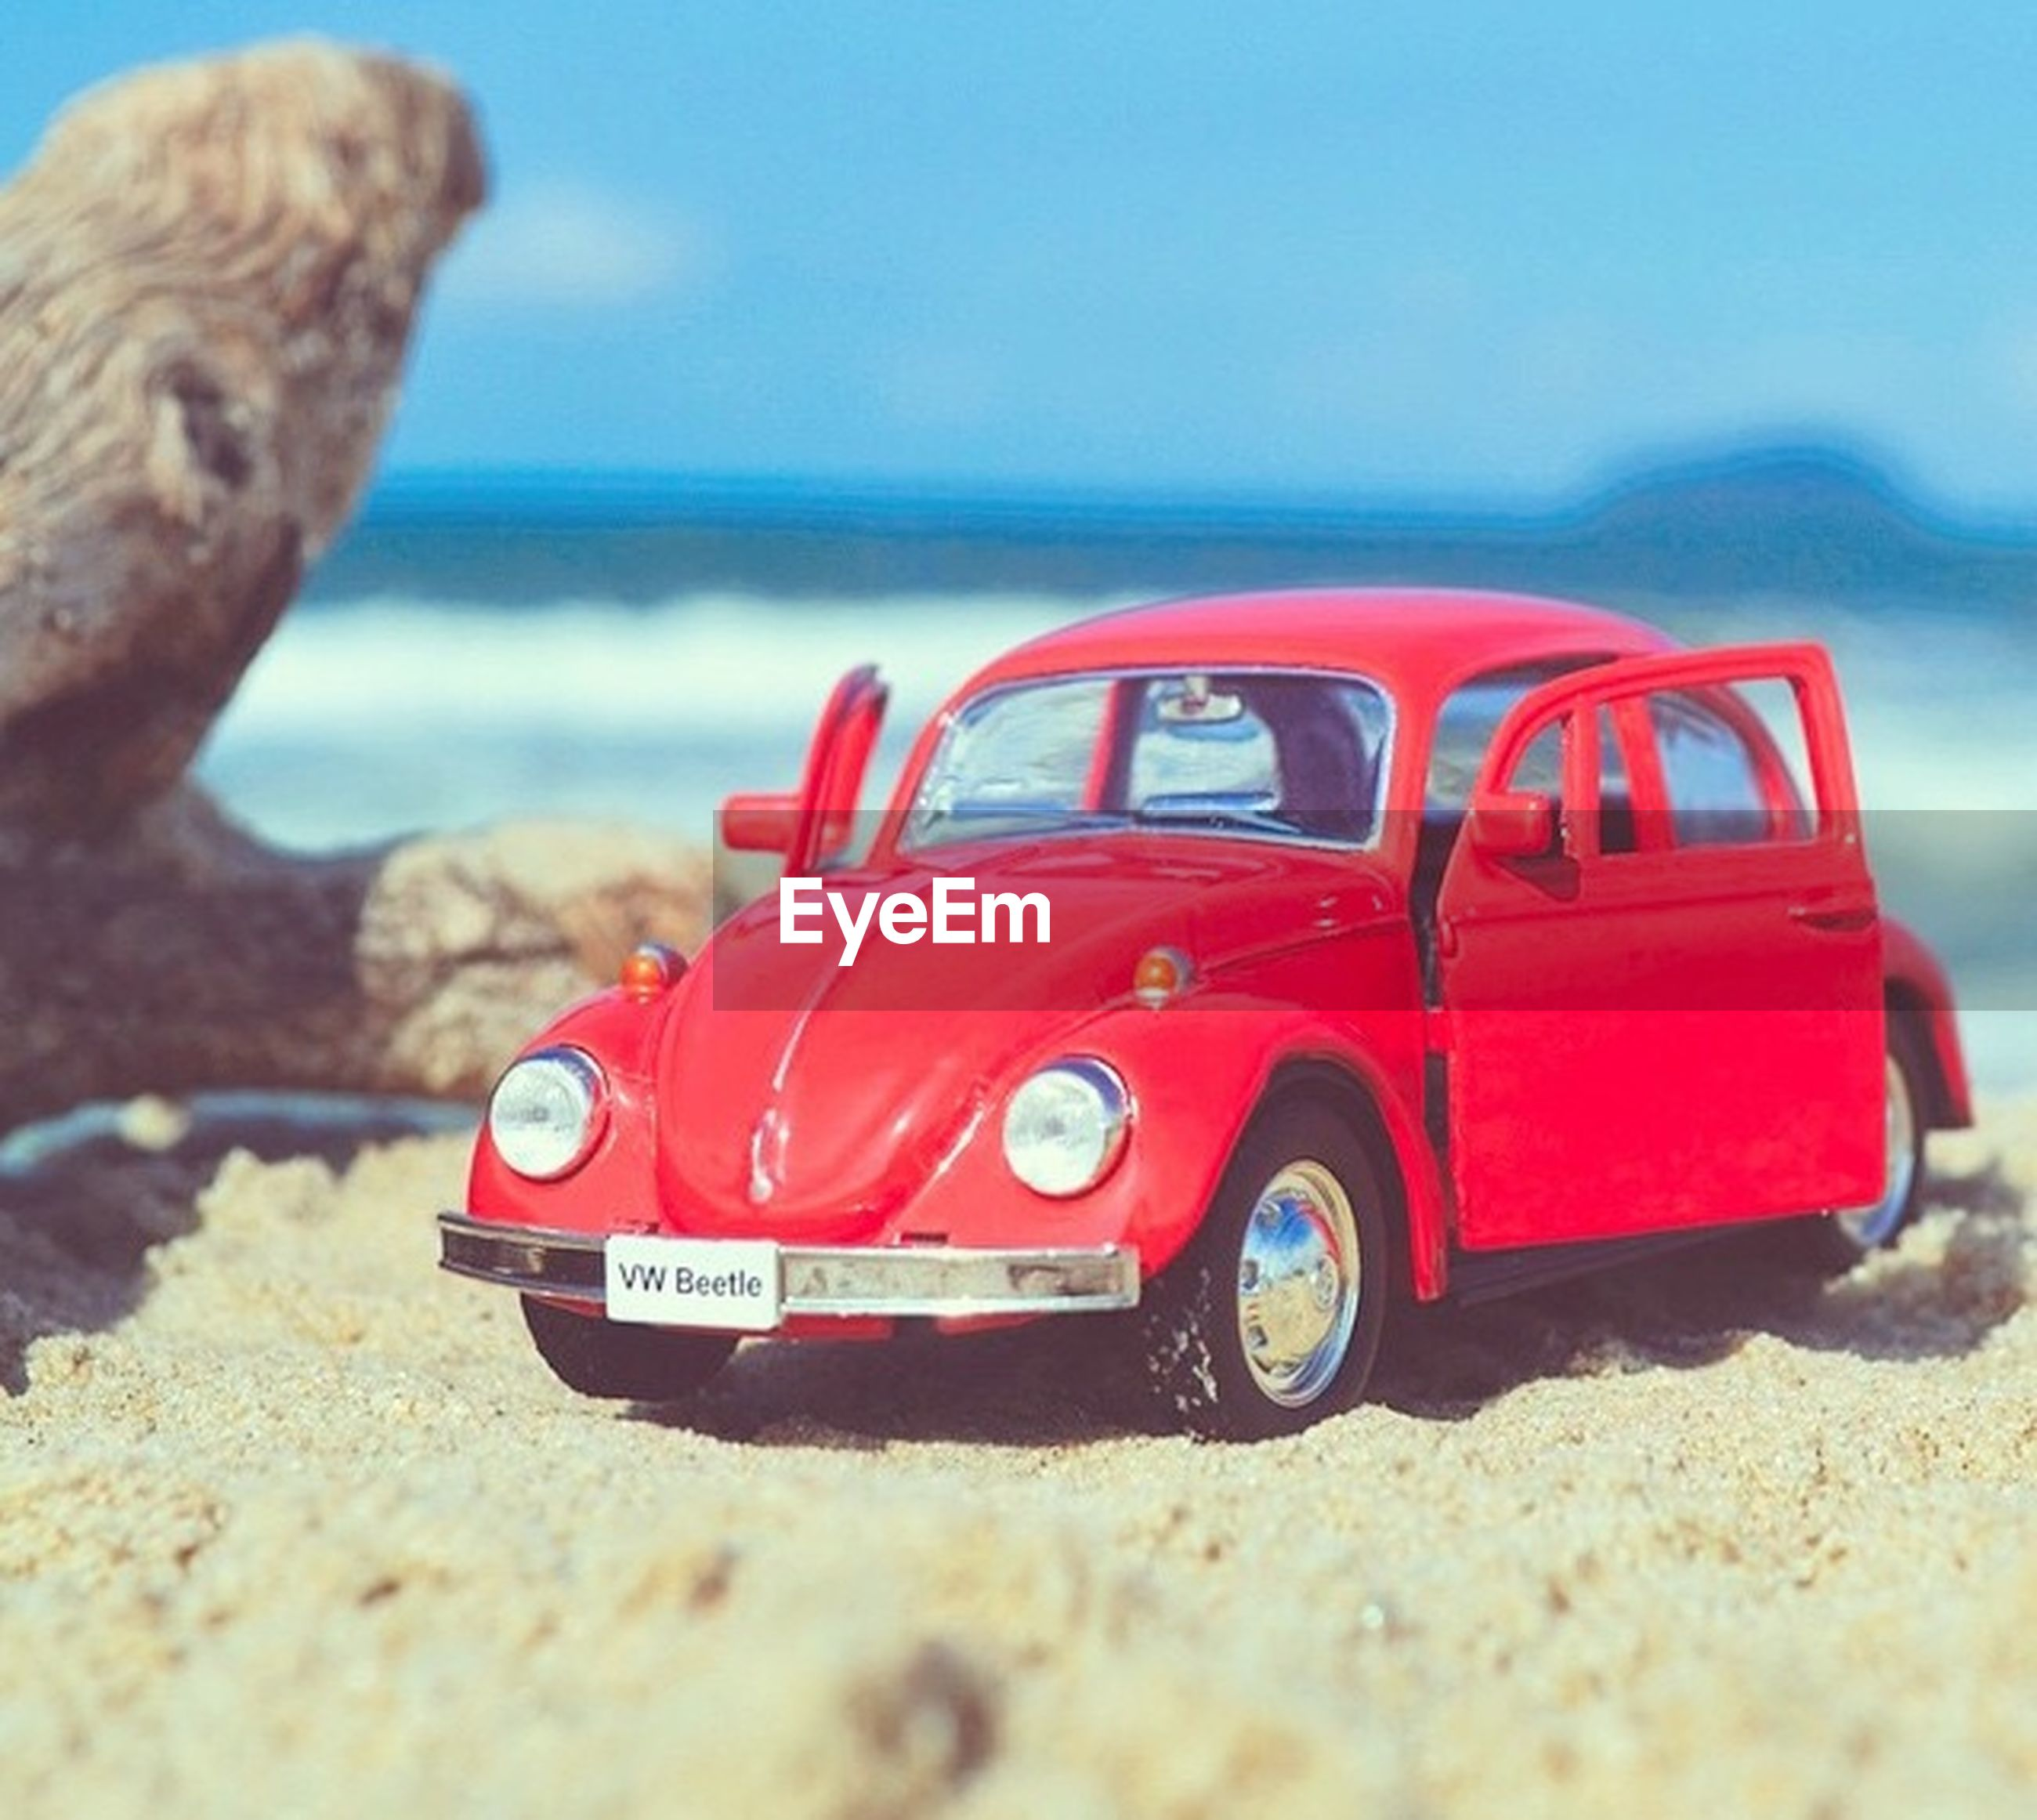 beach, sea, red, transportation, focus on foreground, horizon over water, sand, selective focus, mode of transport, shore, land vehicle, close-up, toy, sky, surface level, clear sky, sunlight, day, outdoors, sunglasses